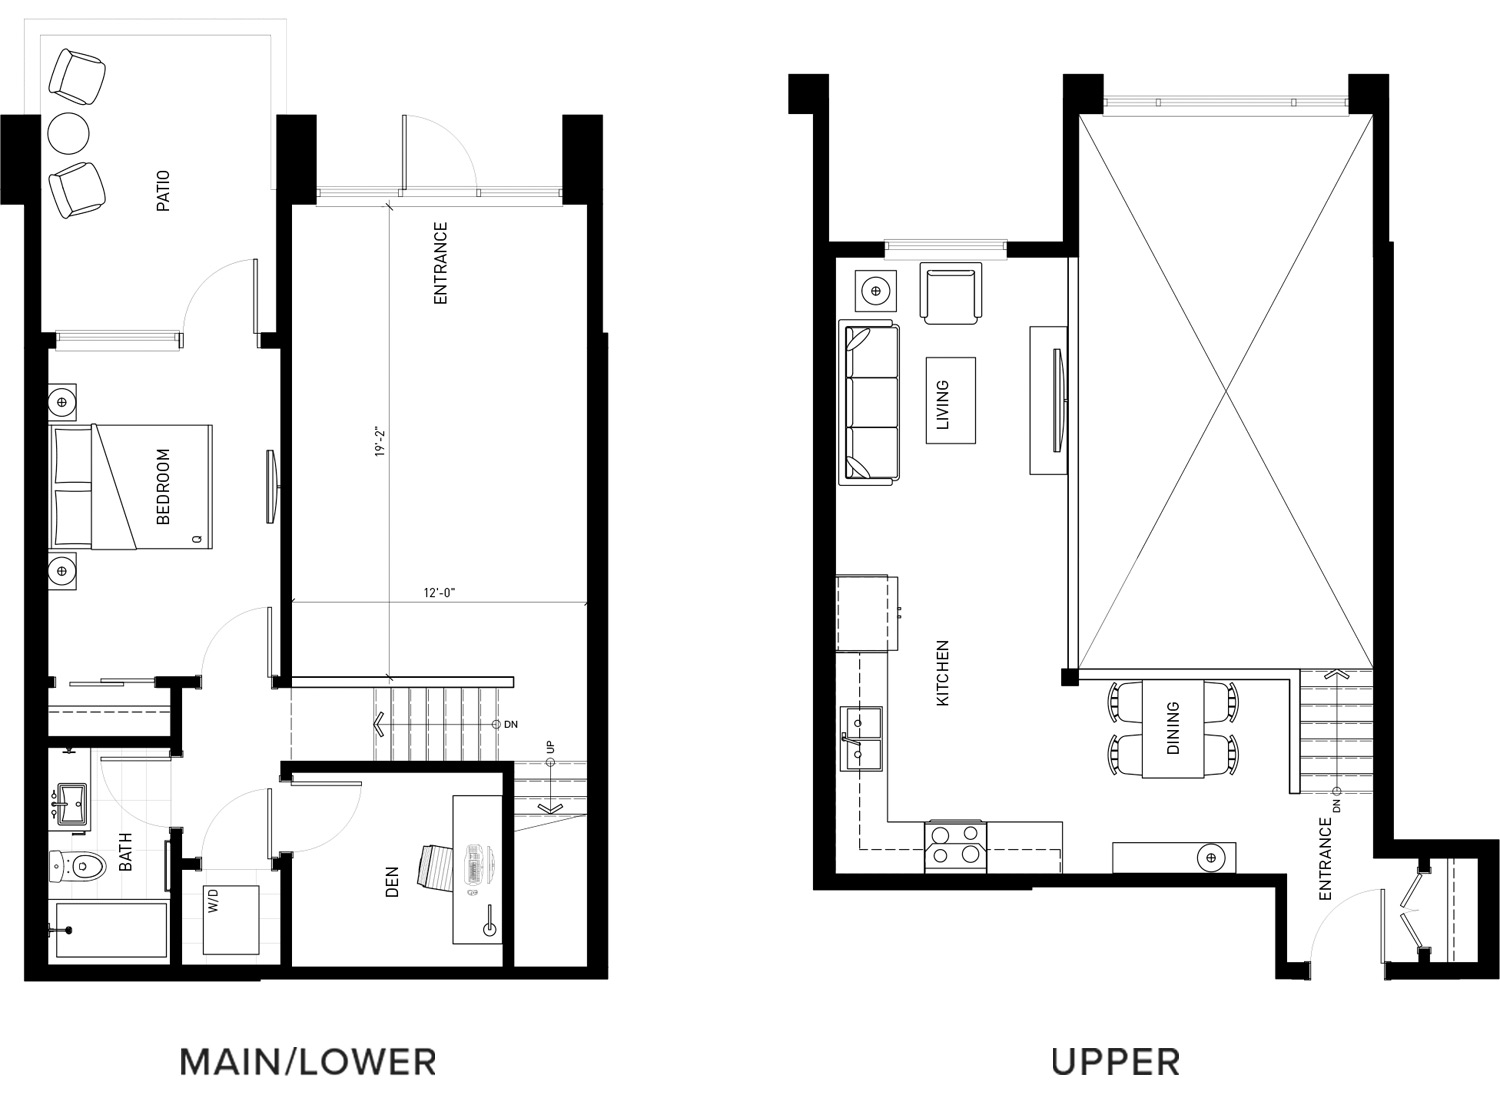 Plan 2 Floorplan